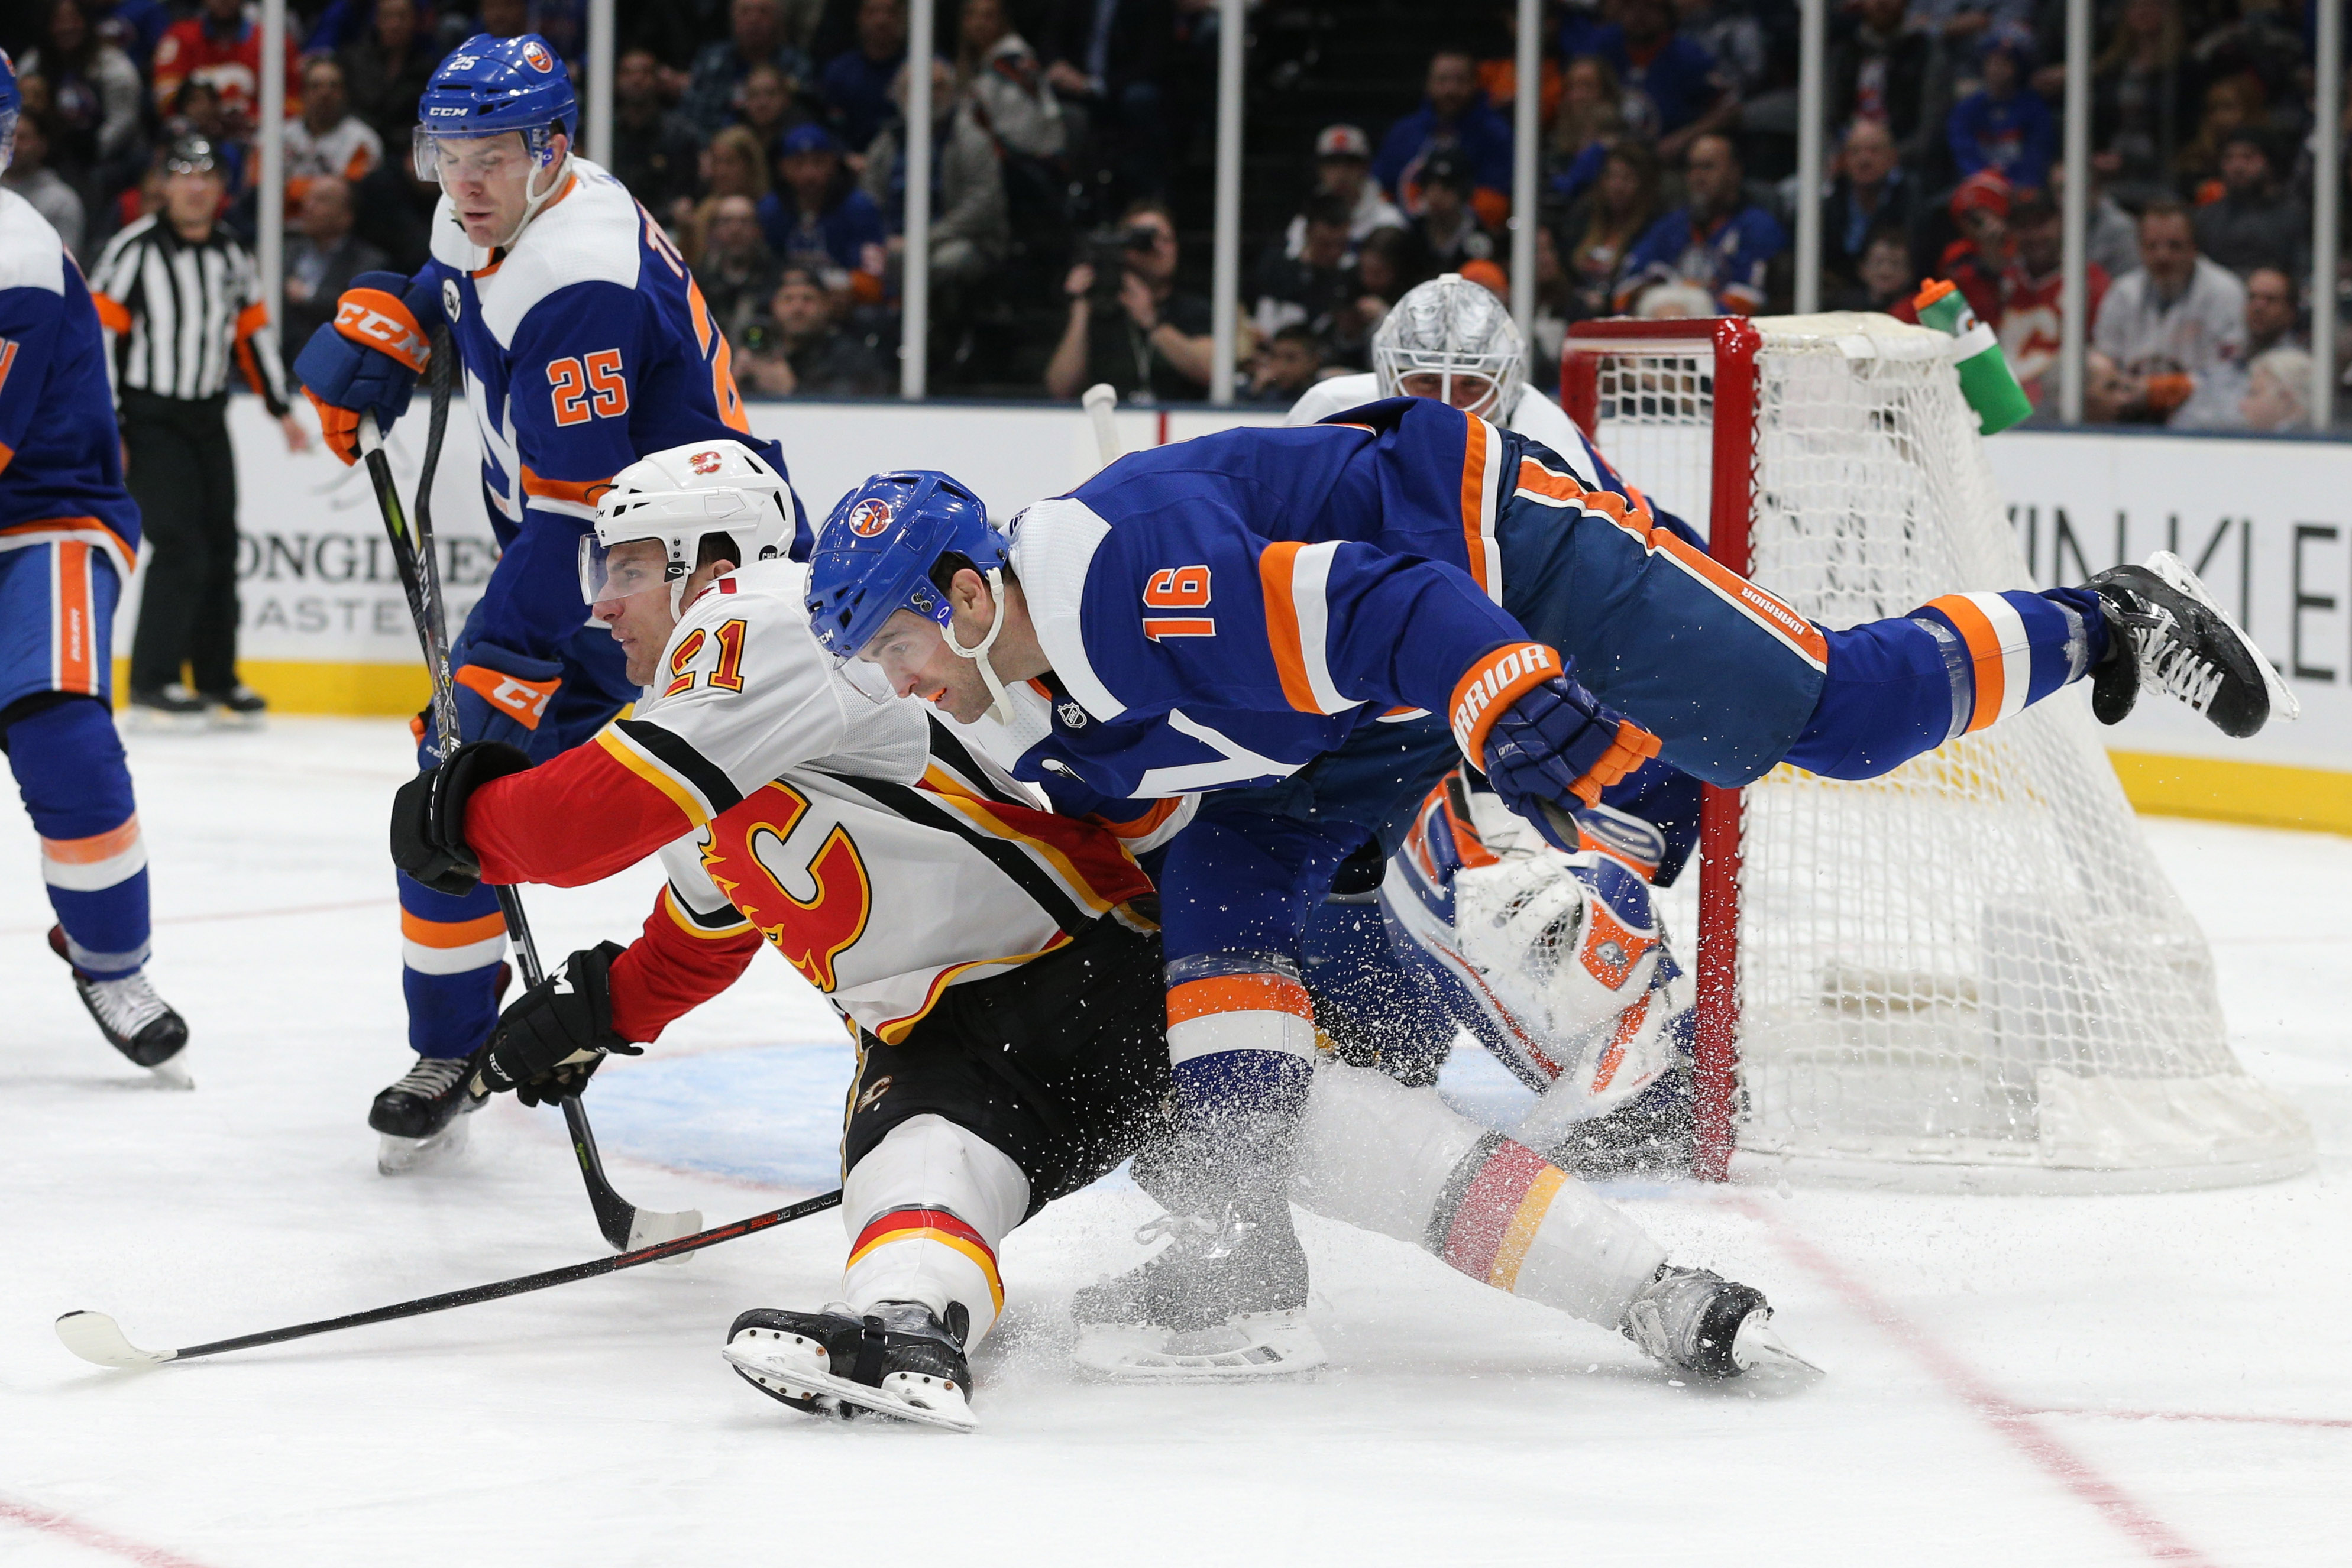 Feb 26, 2019; Uniondale, NY, USA; Calgary Flames right wing Garnet Hathaway (21) collides with New York Islanders left wing Andrew Ladd (16) during the third period at Nassau Veterans Memorial Coliseum. Mandatory Credit: Brad Penner-USA TODAY Sports